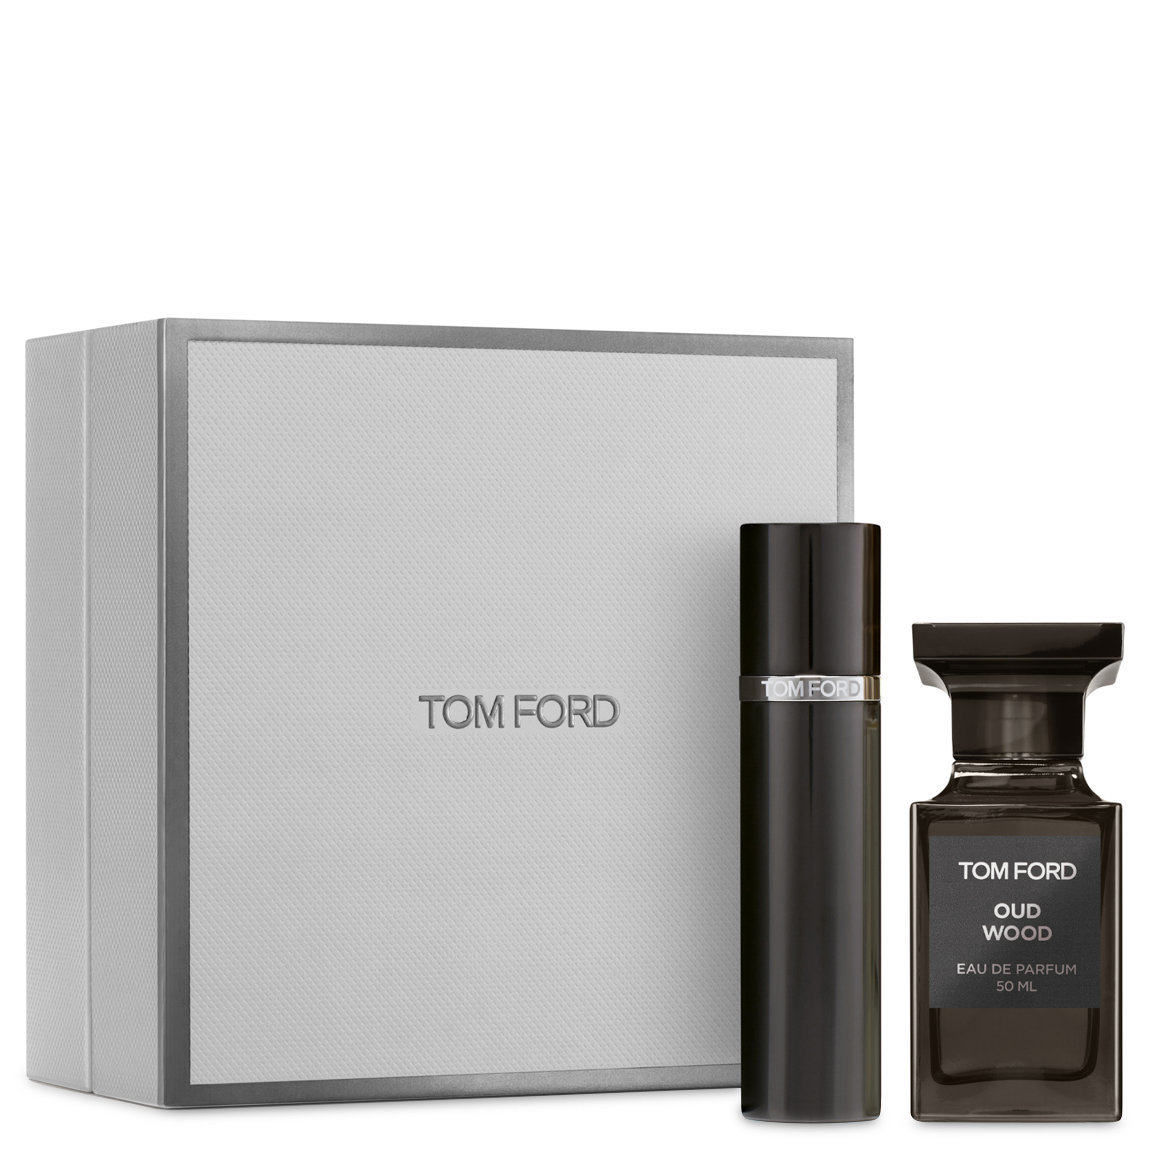 TOM FORD Private Blend Oud Wood Set product swatch.